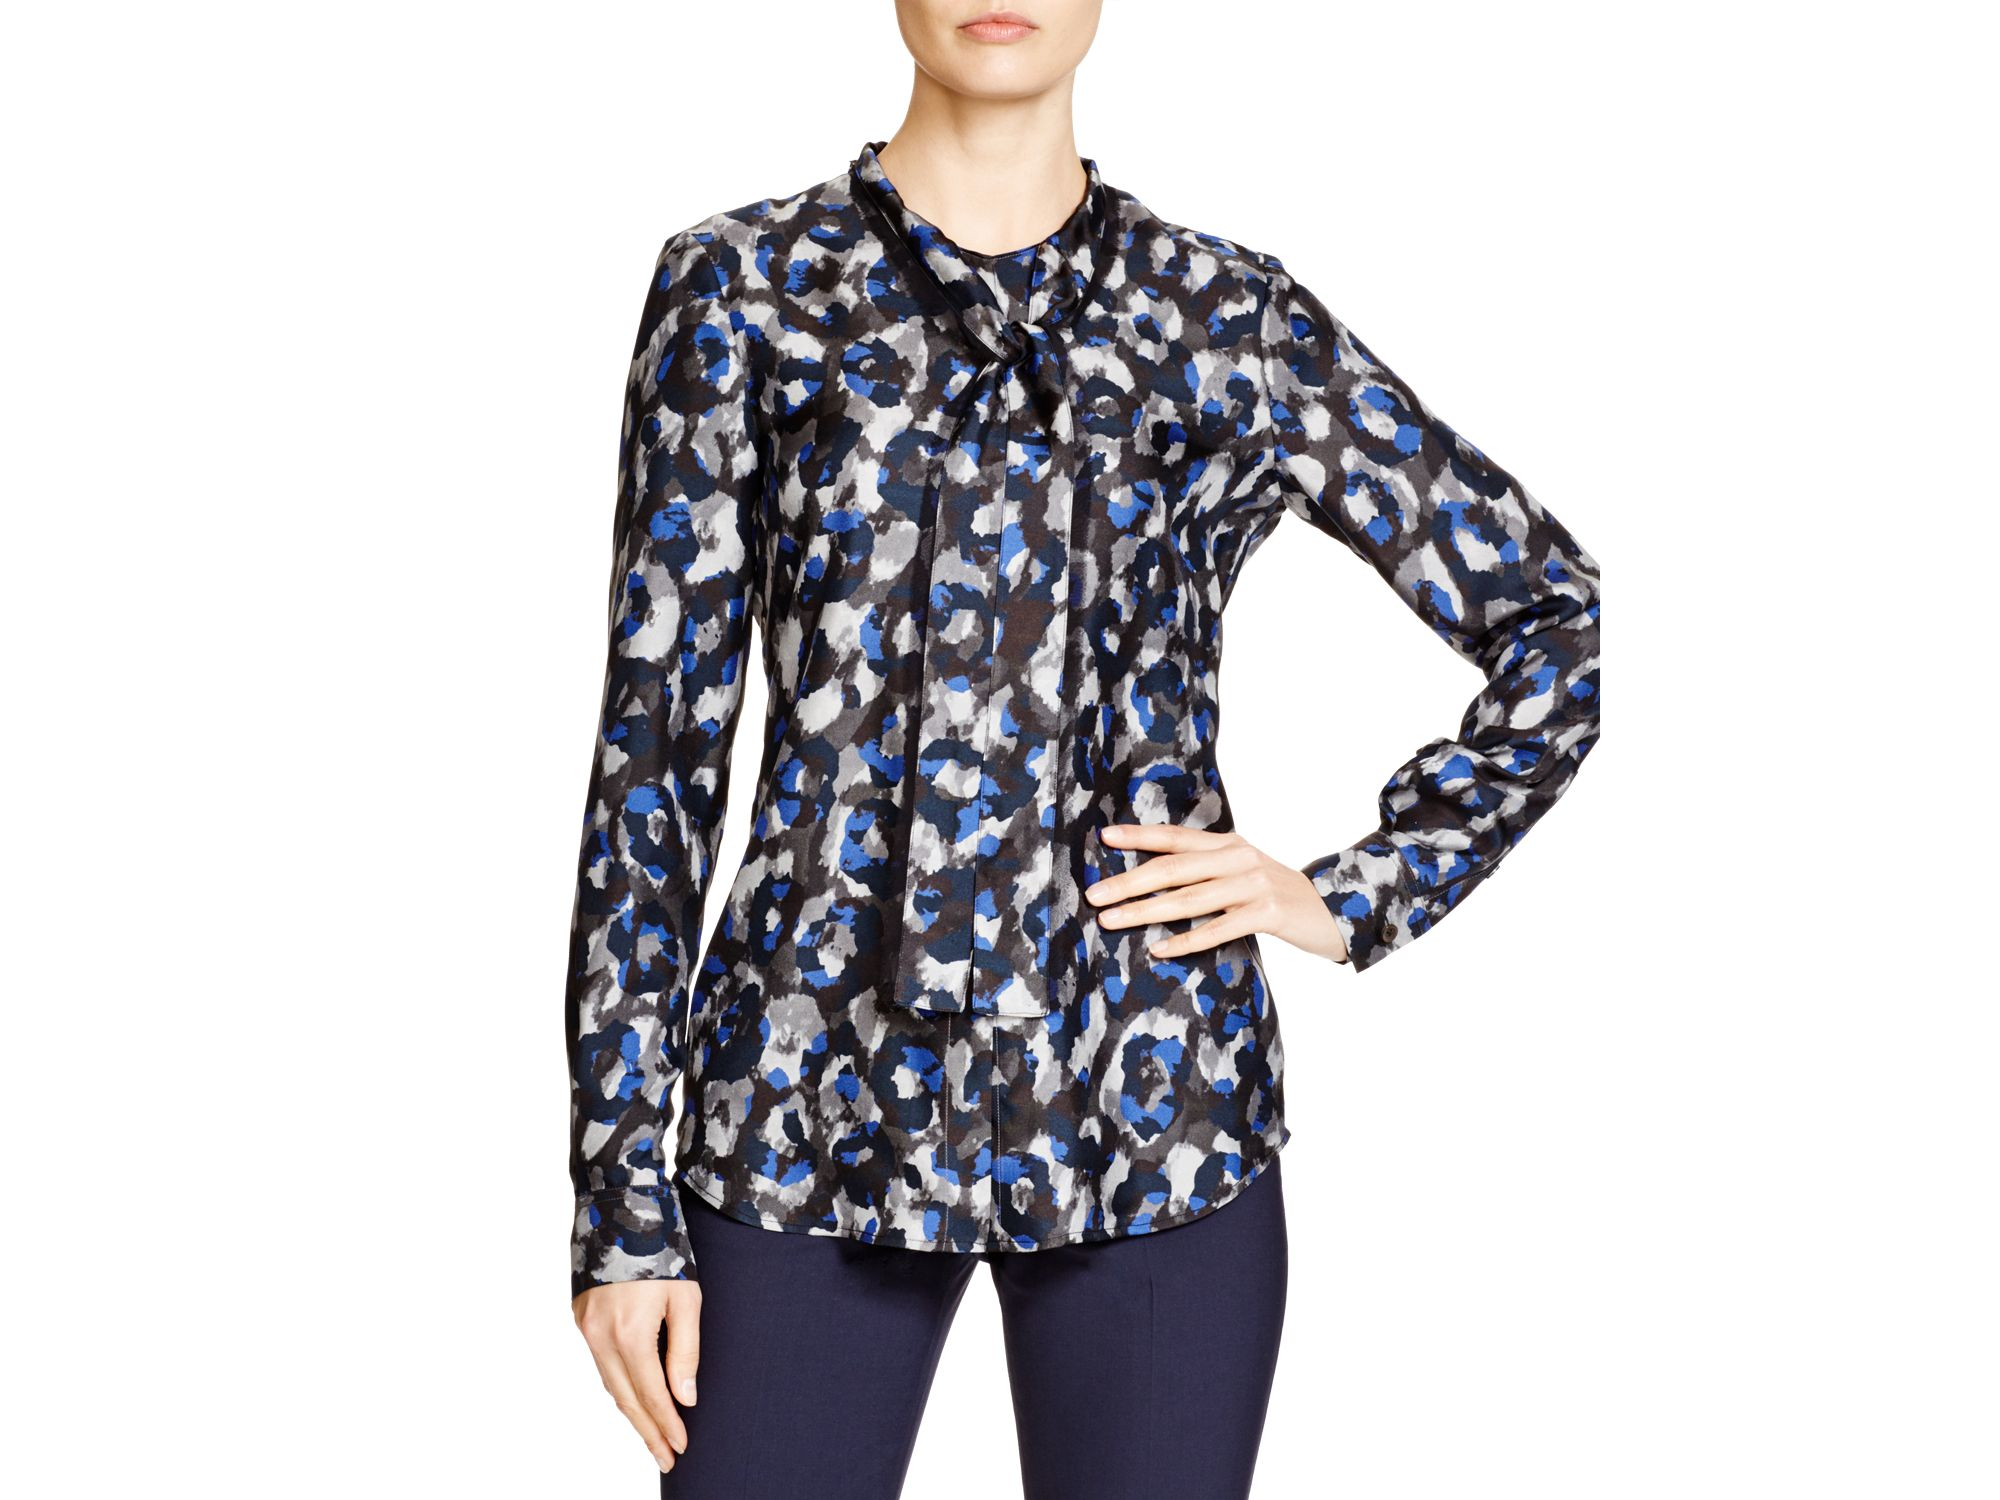 95ab96181ab Theory Raashida Abstract Print Blouse - Bloomingdale's Exclusive in ...